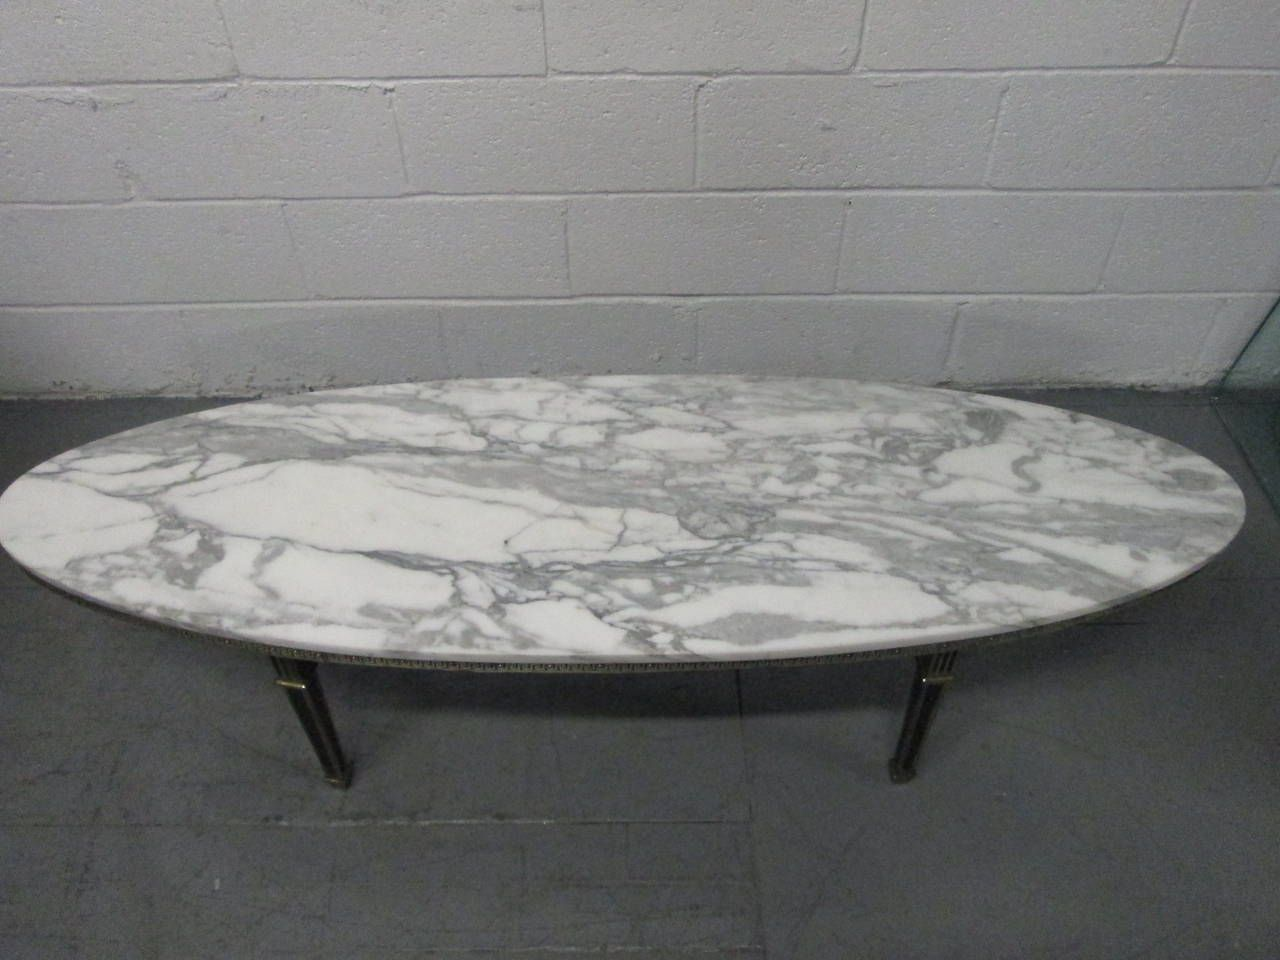 Hollywood Regency Oval MarbleTop Coffee Table From a unique